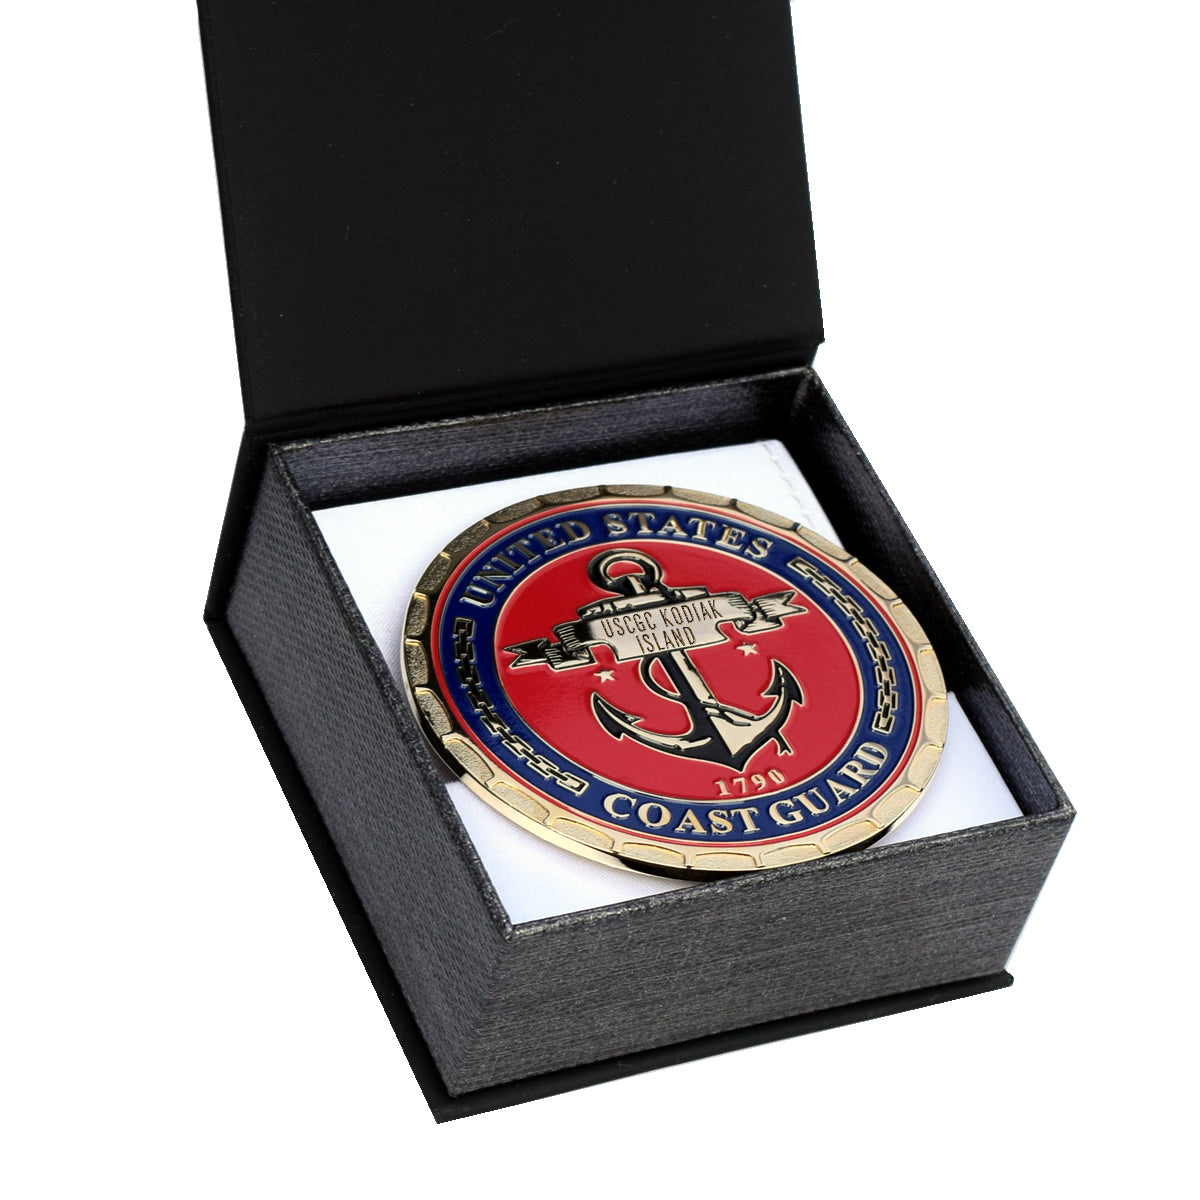 USCGC KODIAK ISLAND WPB-1341 COAST GUARD PLAQUE